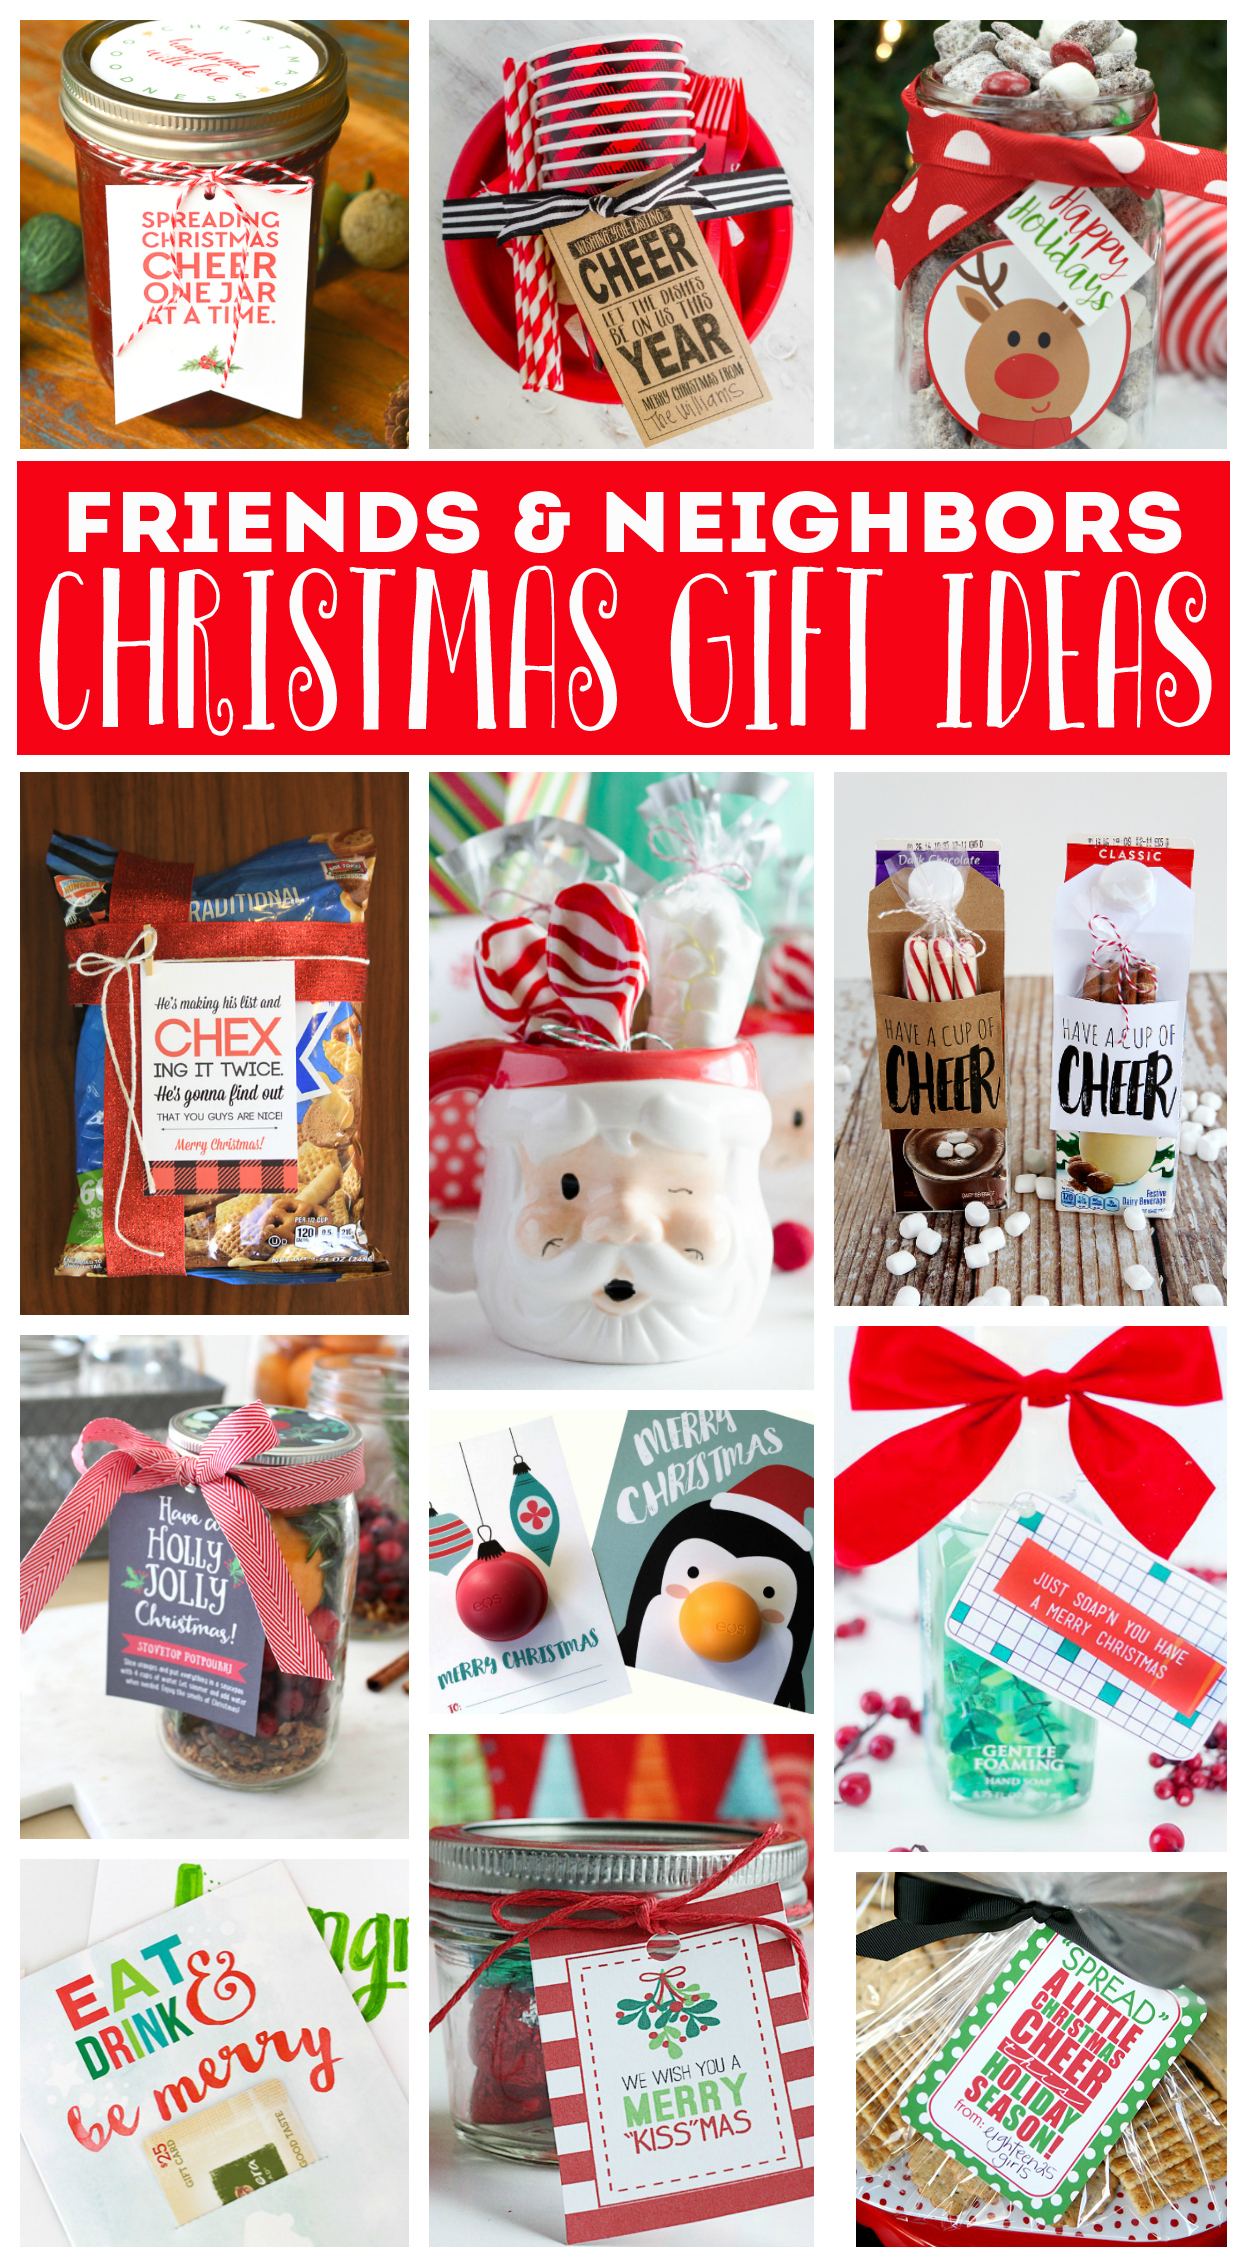 Neighbor Christmas Gifts That Are Fun, Easy to Put Together and Inexpensive!